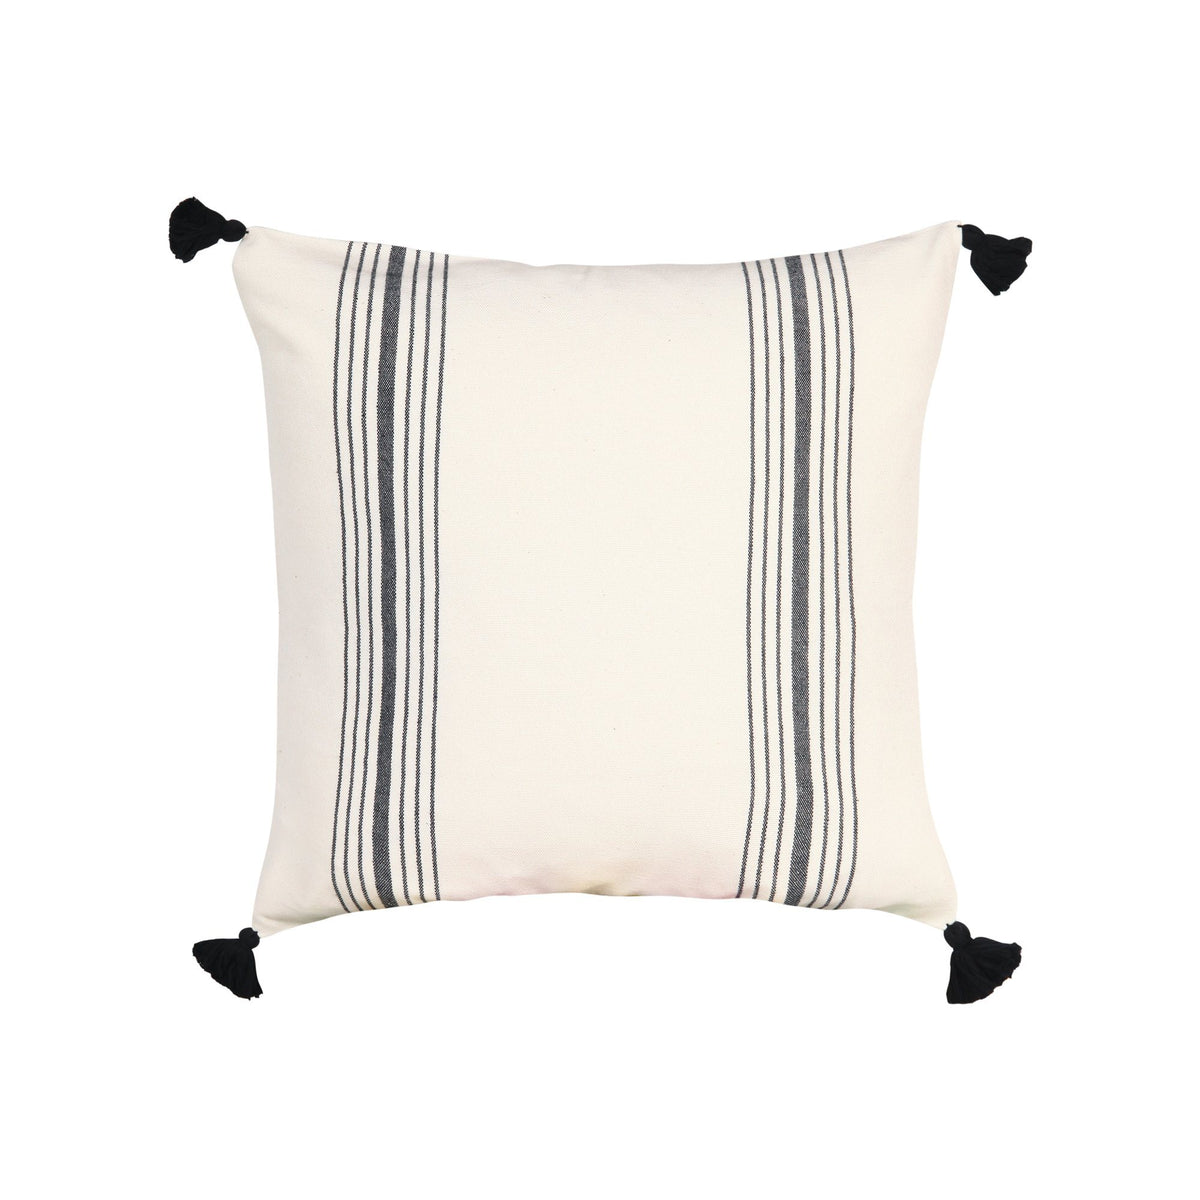 Allez Throw Pillow Cover SQ